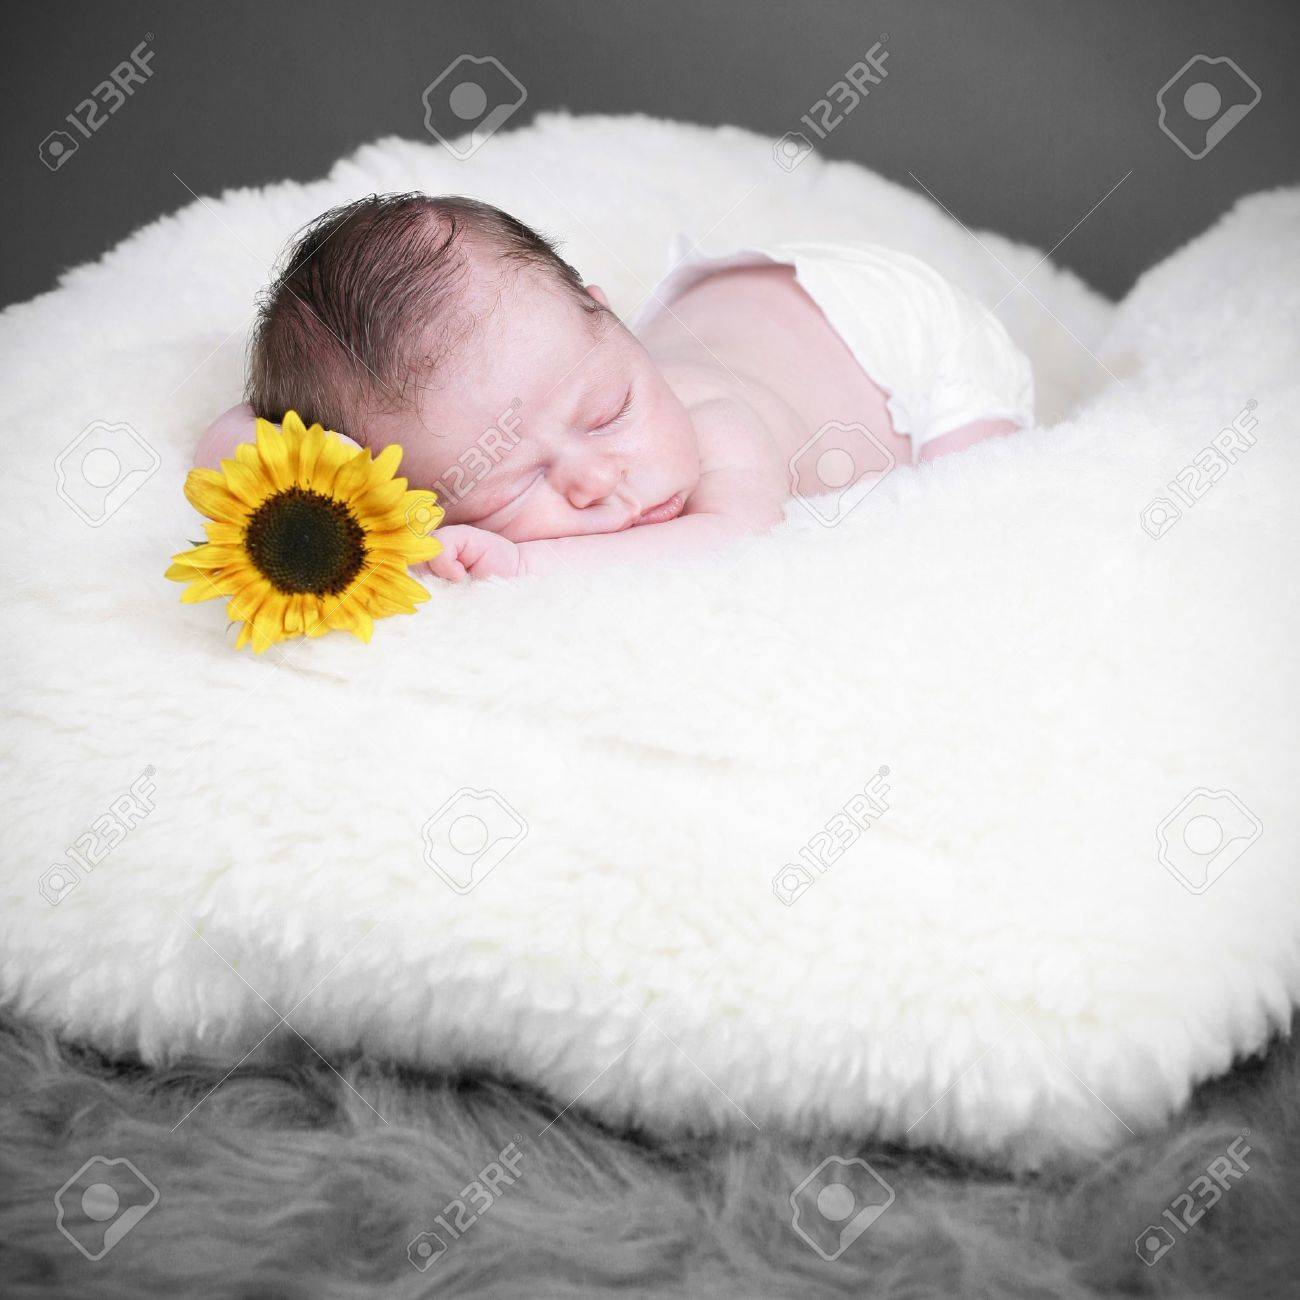 Adorable newborn baby with sunflower Stock Photo - 10448714